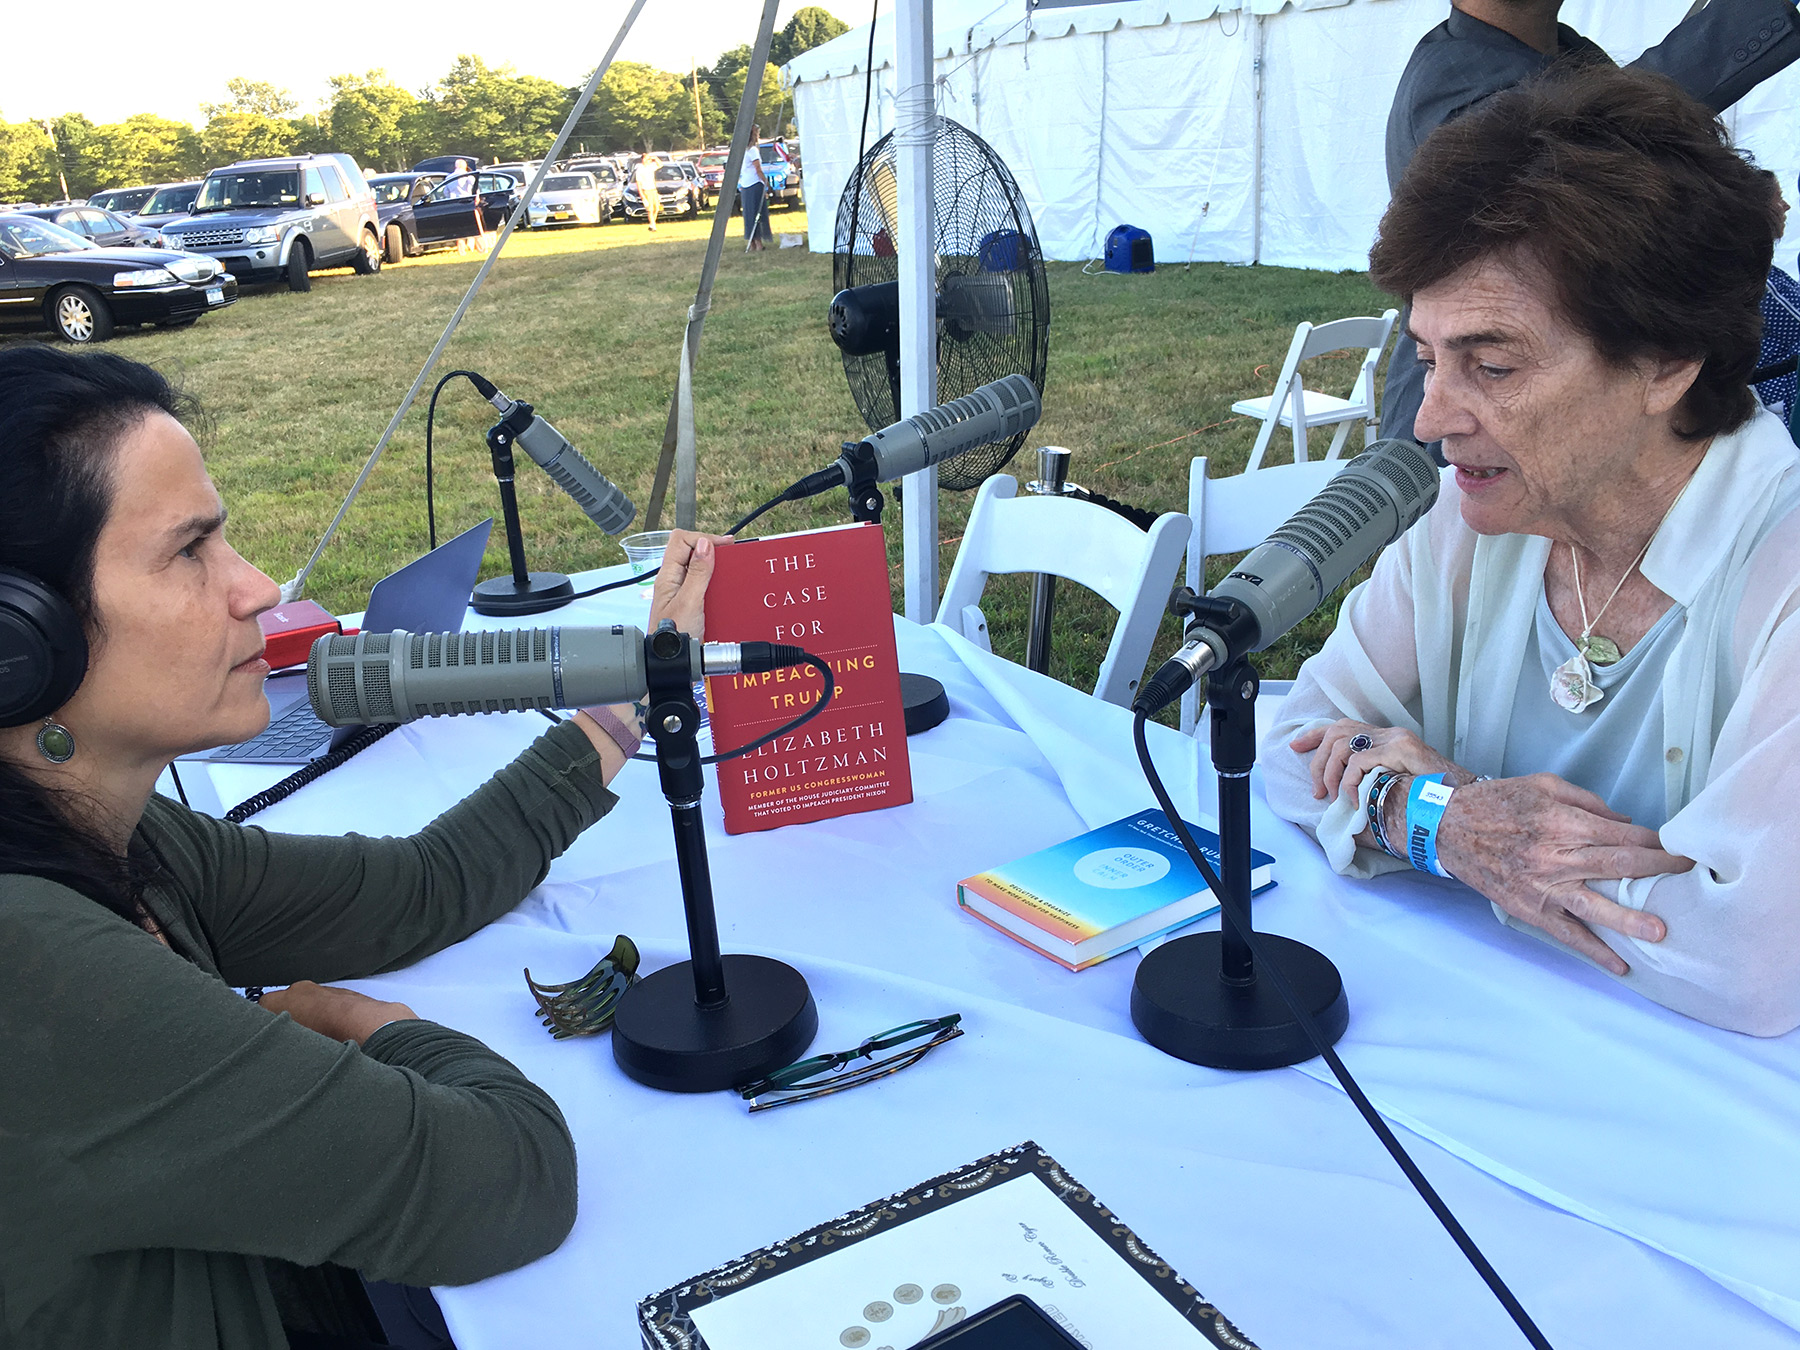 with four-term NY Democratic Congresswoman and author Elizabeth Holtzman